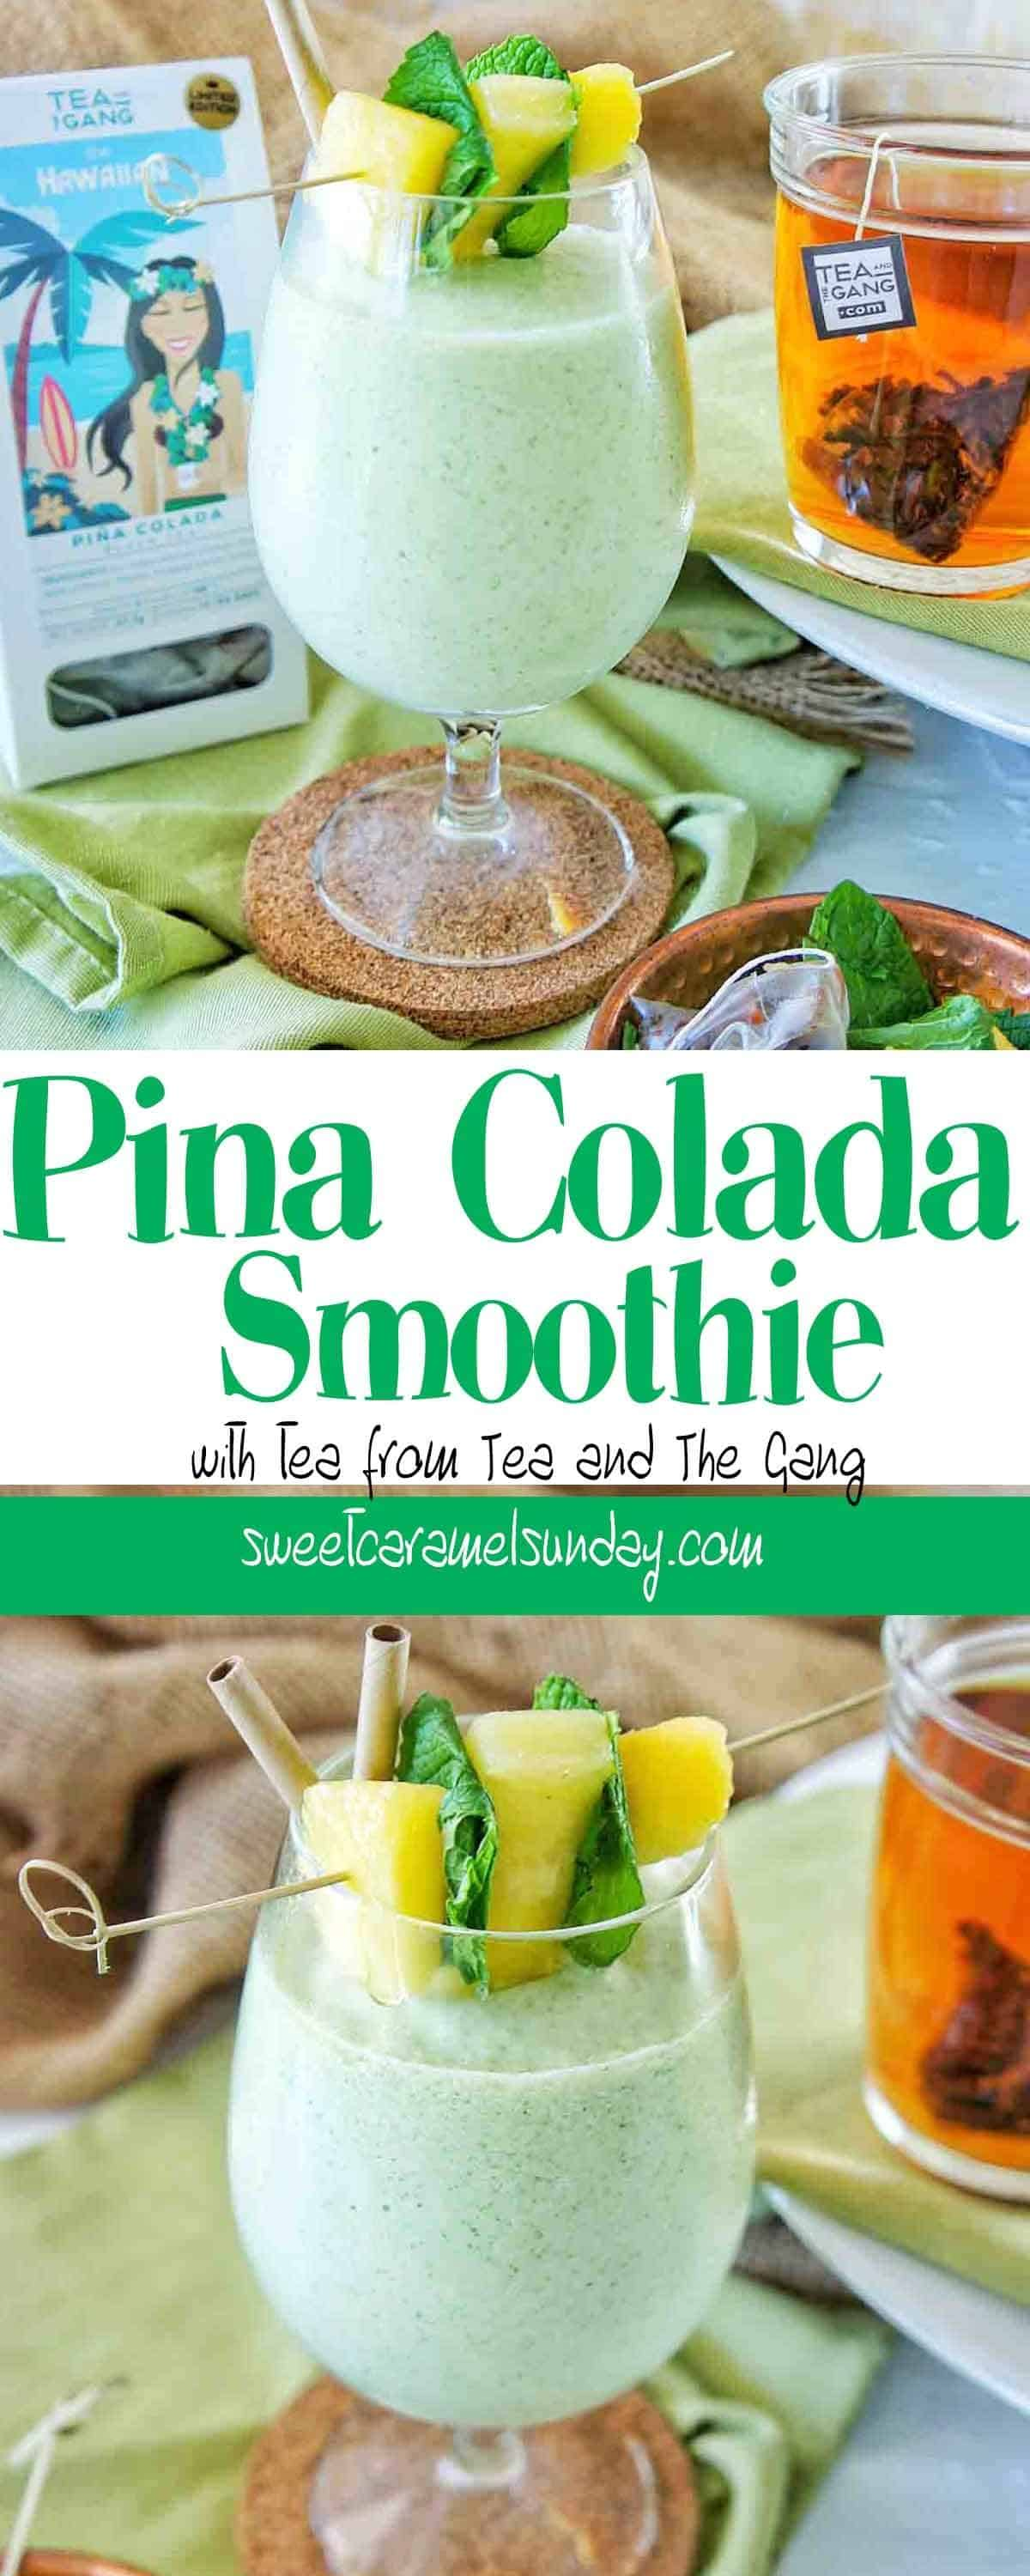 Pina Colada Smoothie in a glass with a straw and pineapple garnish